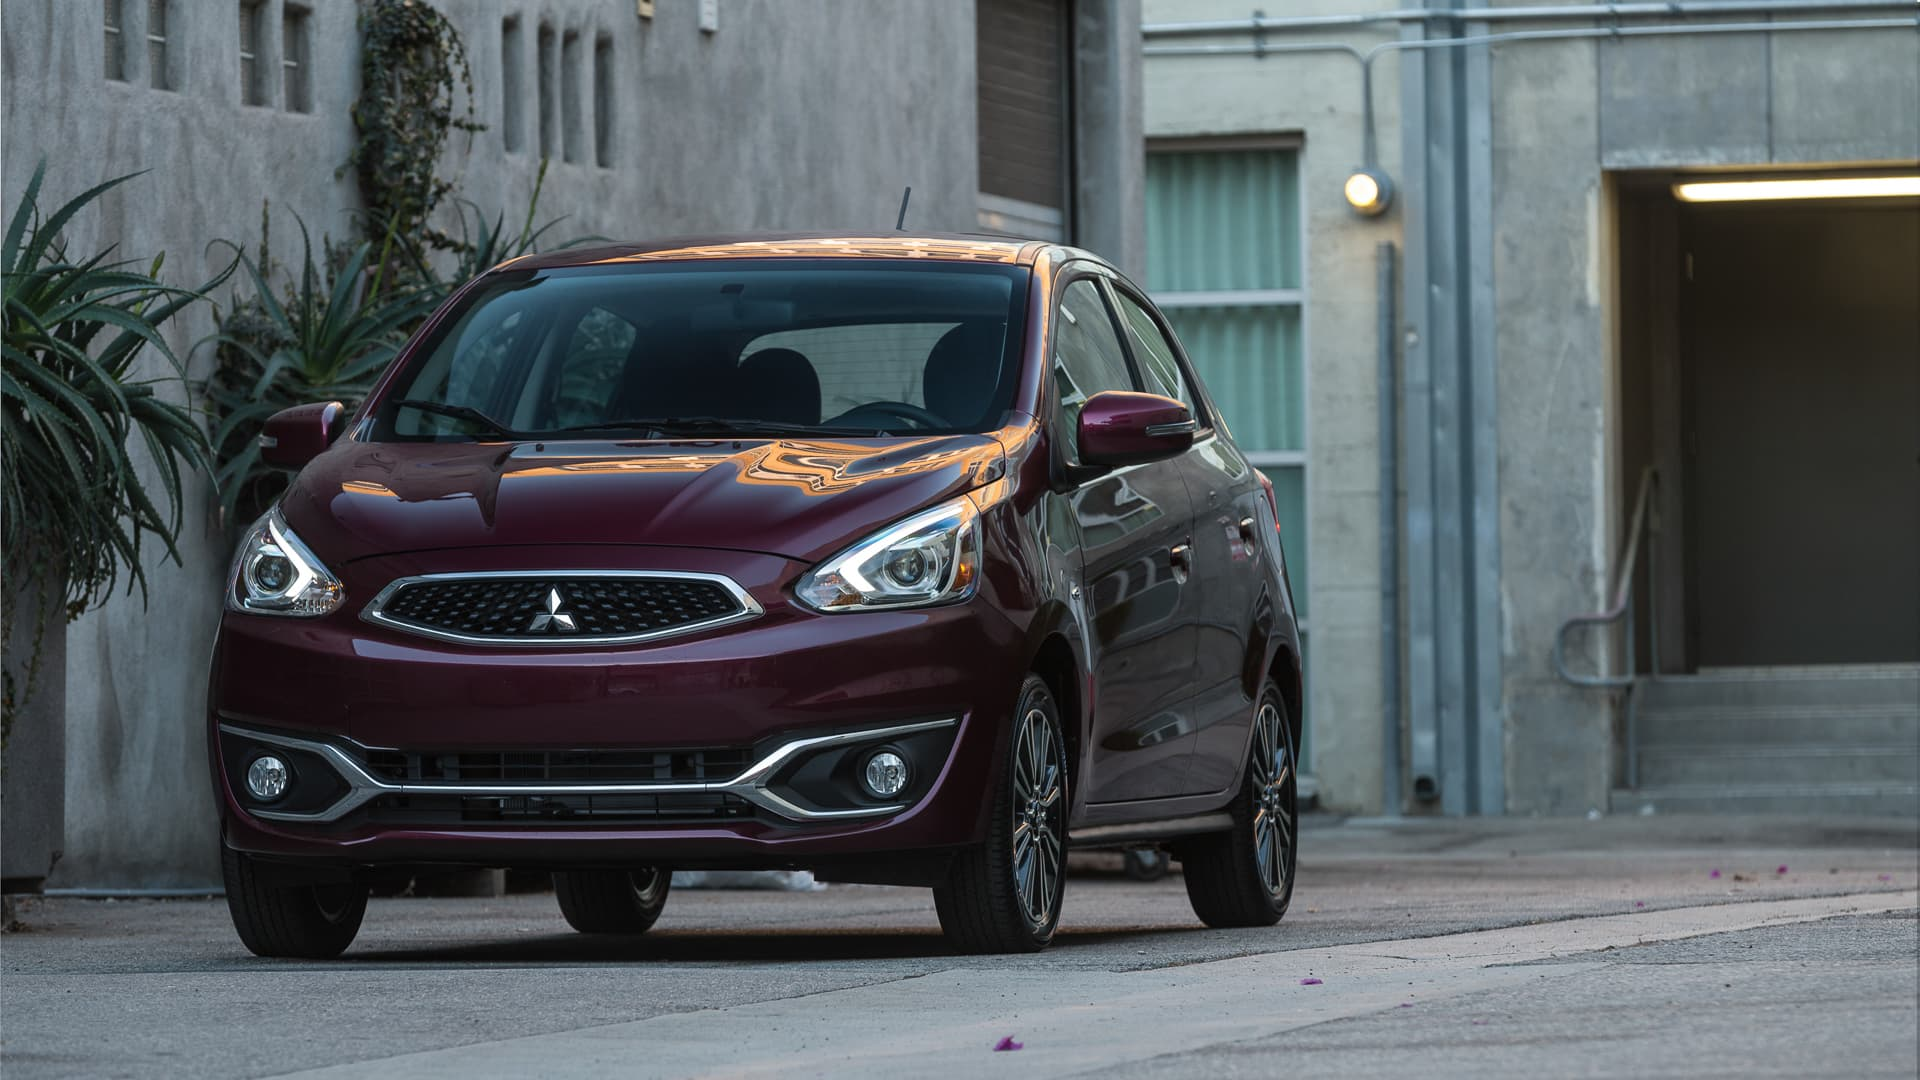 10 new cars you can for under $300 a month